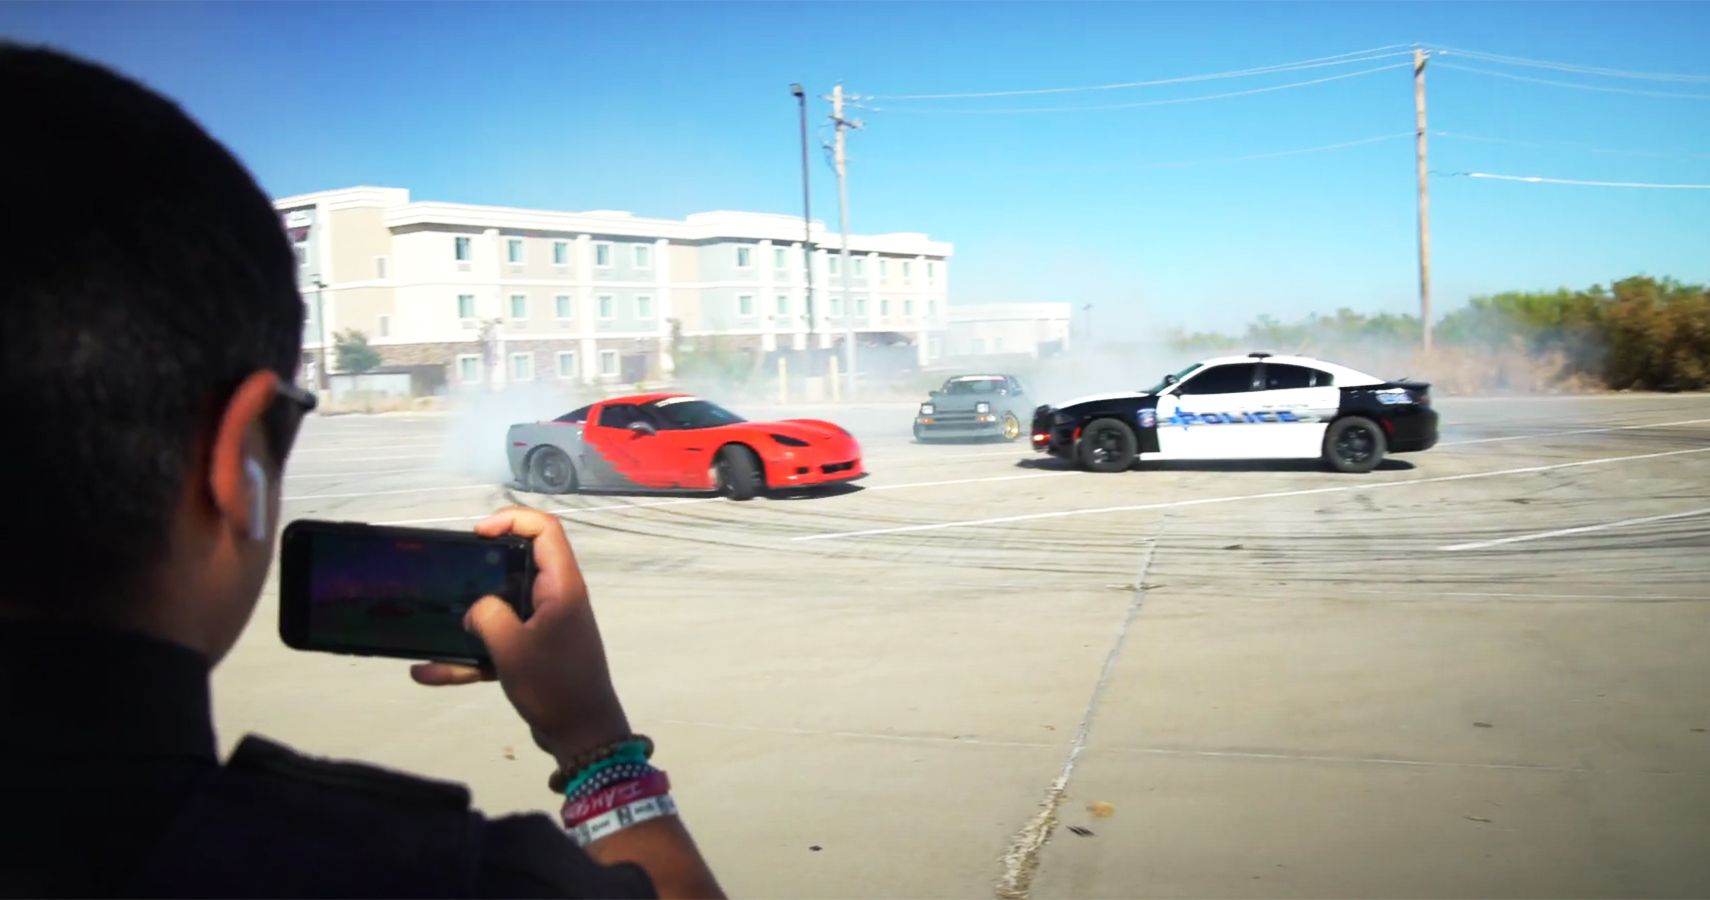 This Cop Is Totally Cool With Letting These Drifters Do Donuts Around His Police Squad Car